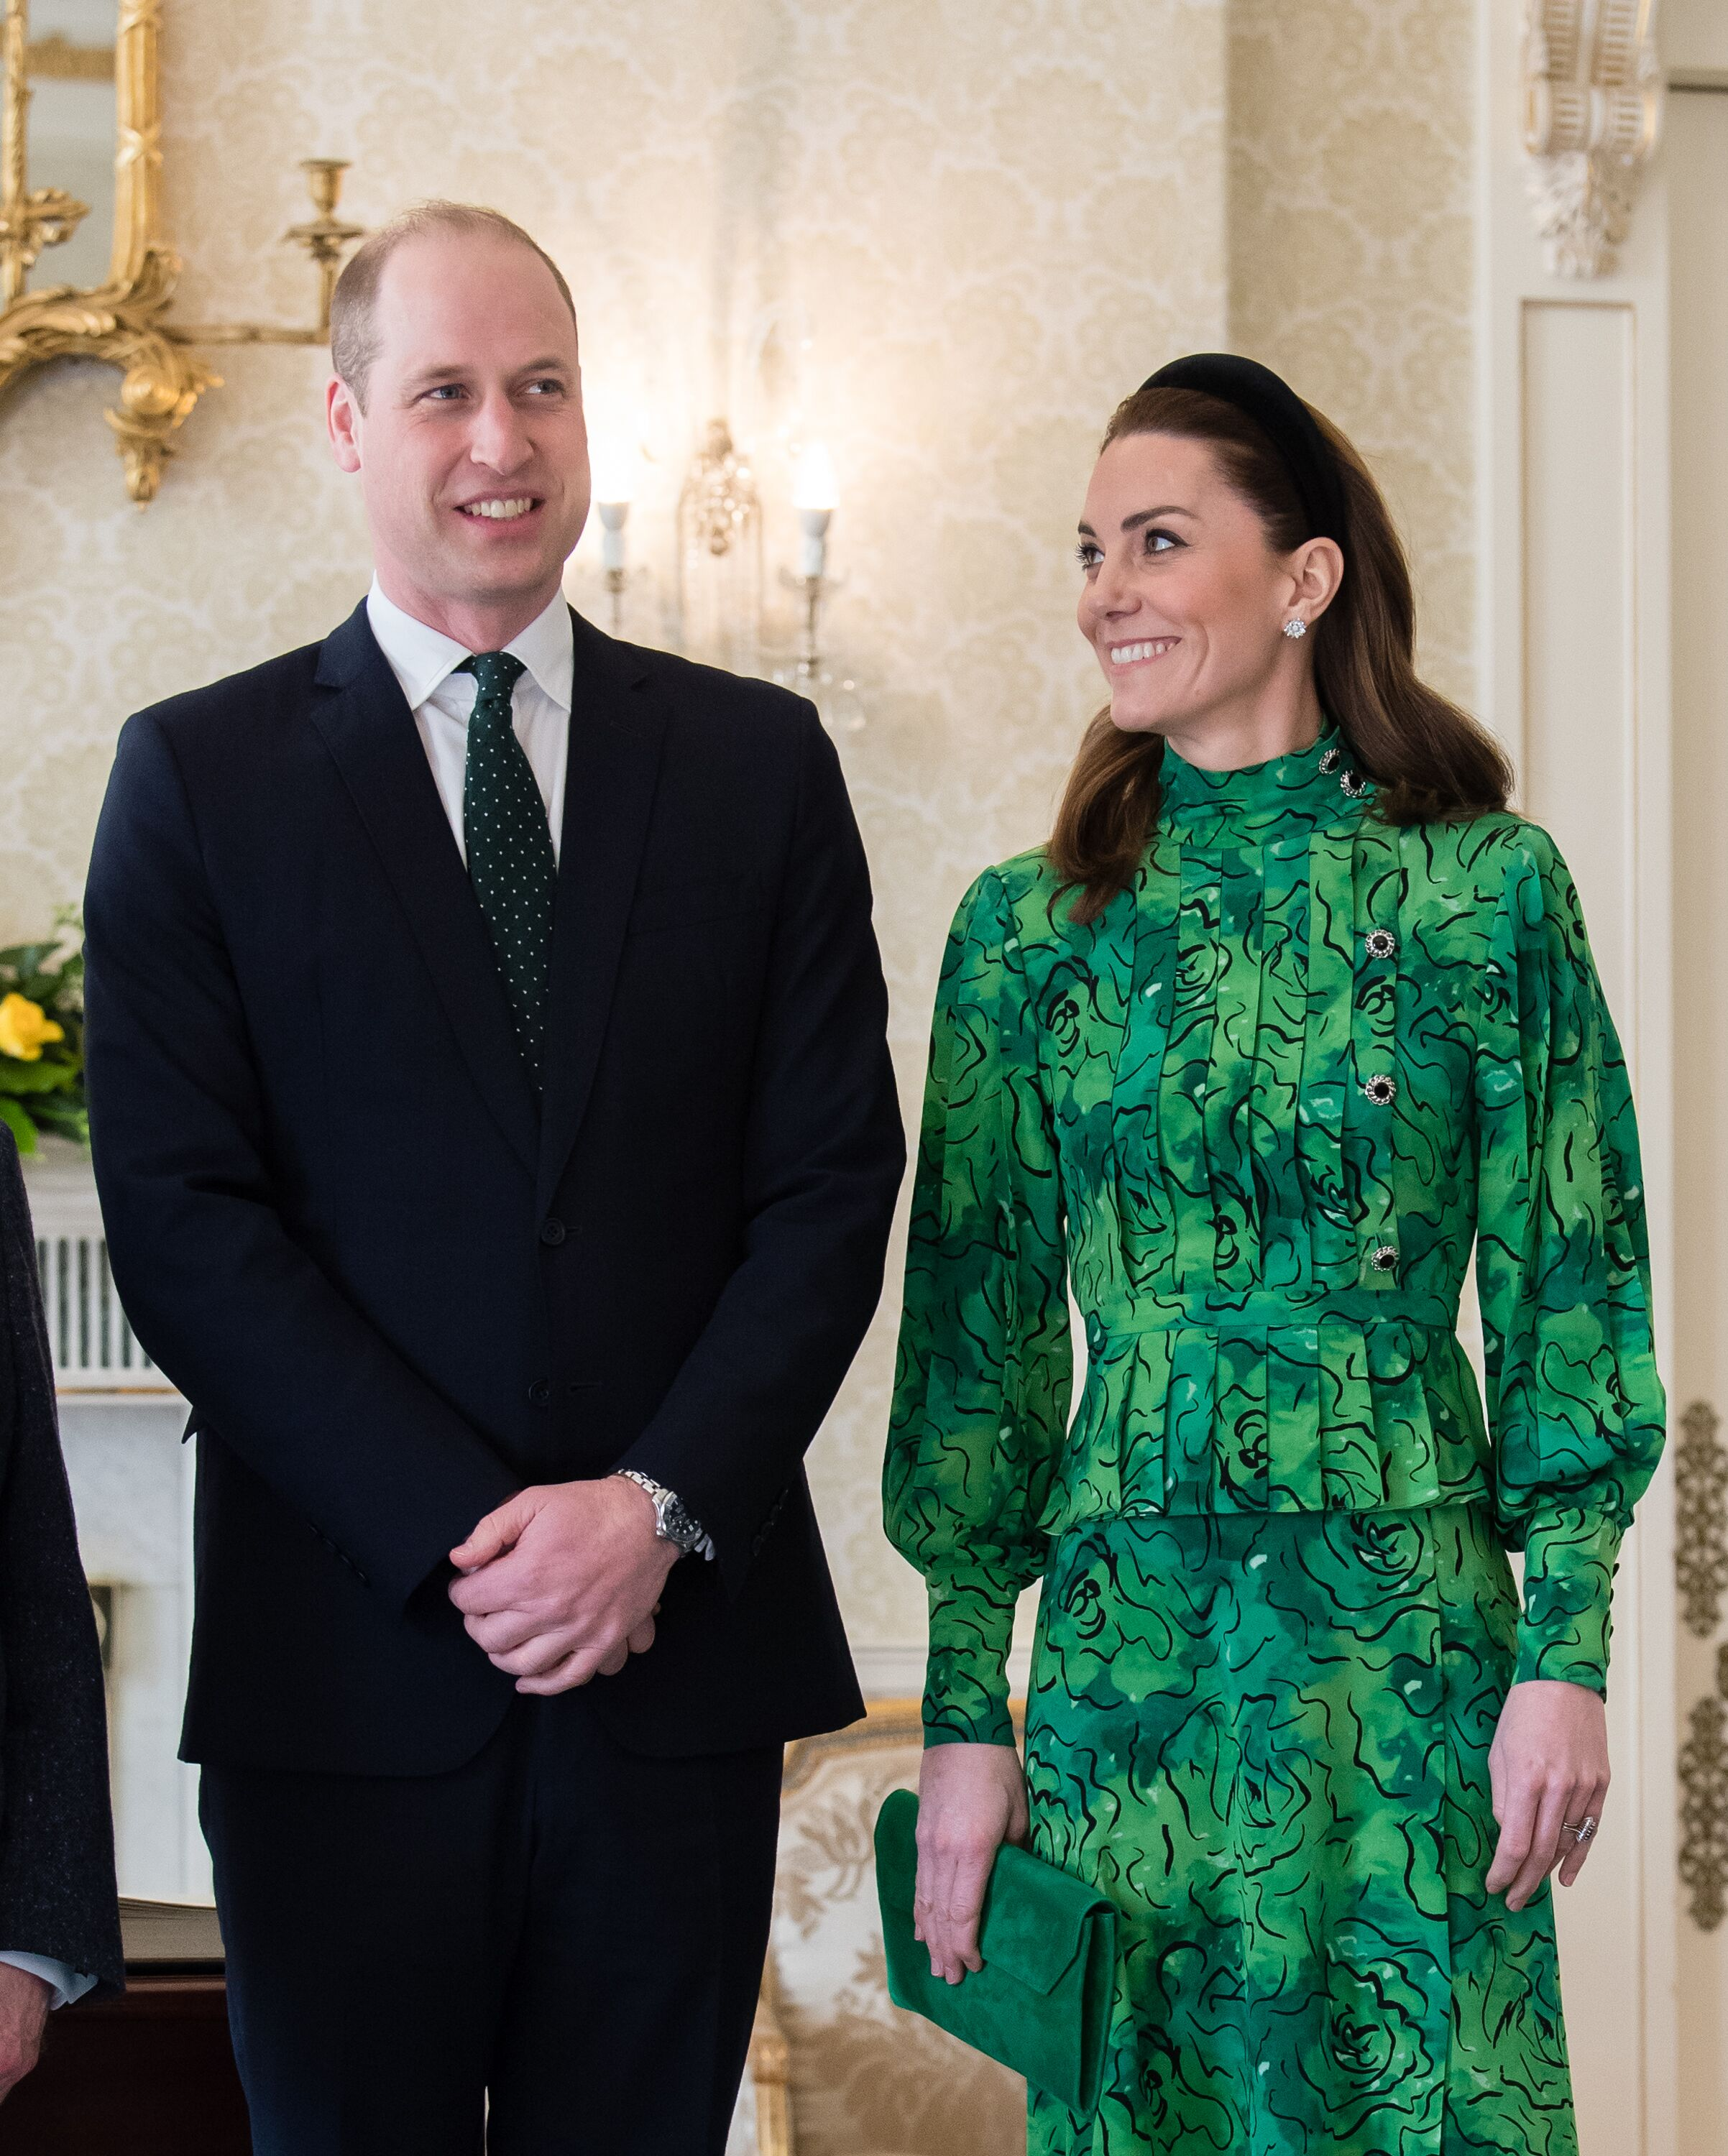 Catherine, Duchess of Cambridge and Prince William, Duke of Cambridge attend a meeting with the President of Ireland at Áras an Uachtaráin on March 03, 2020 | Photo: Getty Images